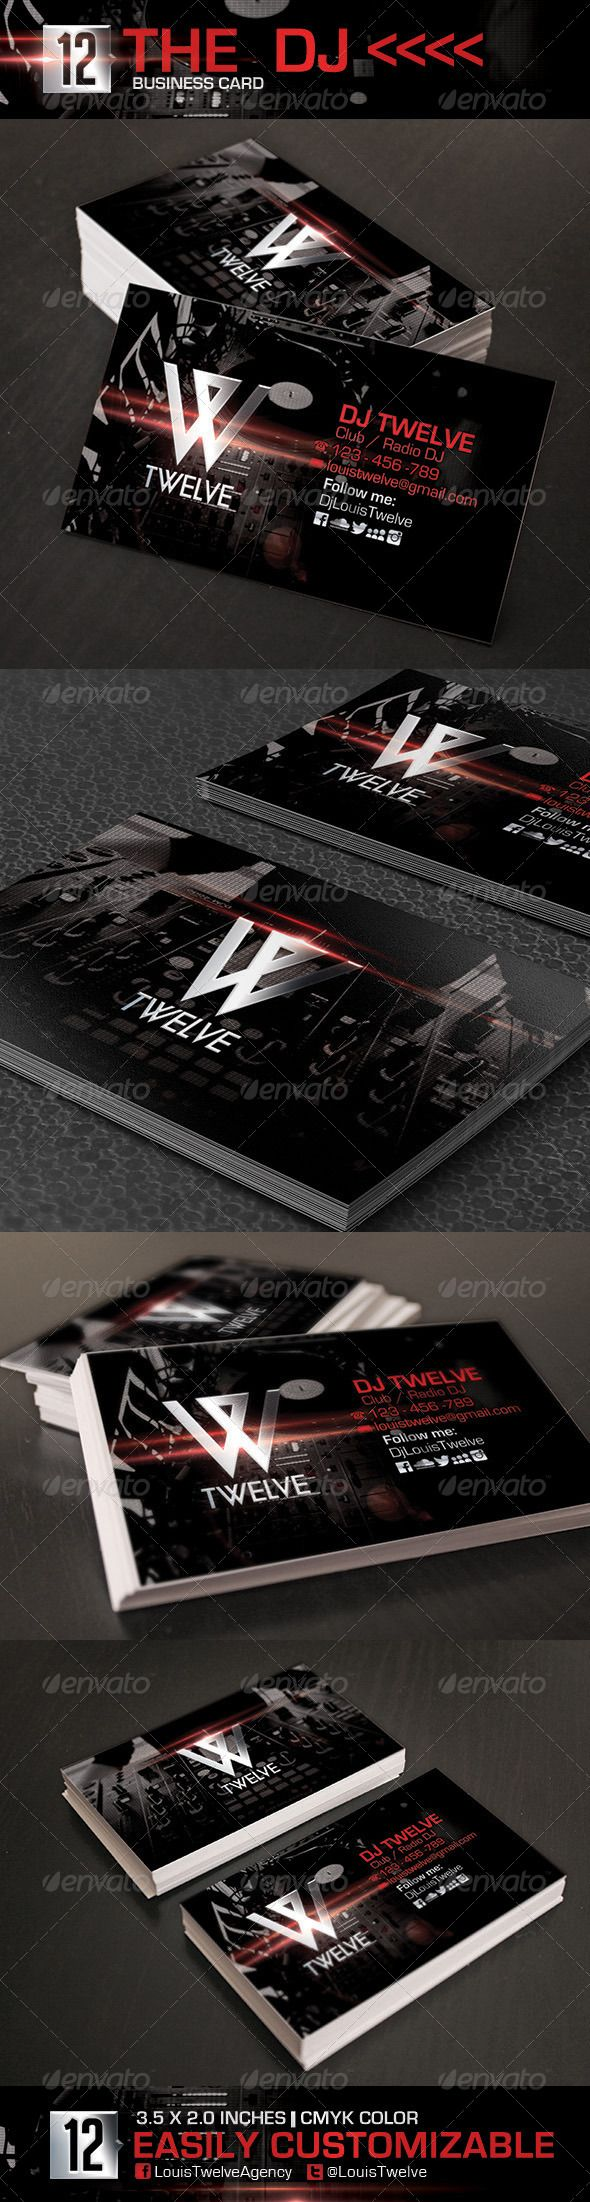 Djj business link agcguru info - The Dj Business Card